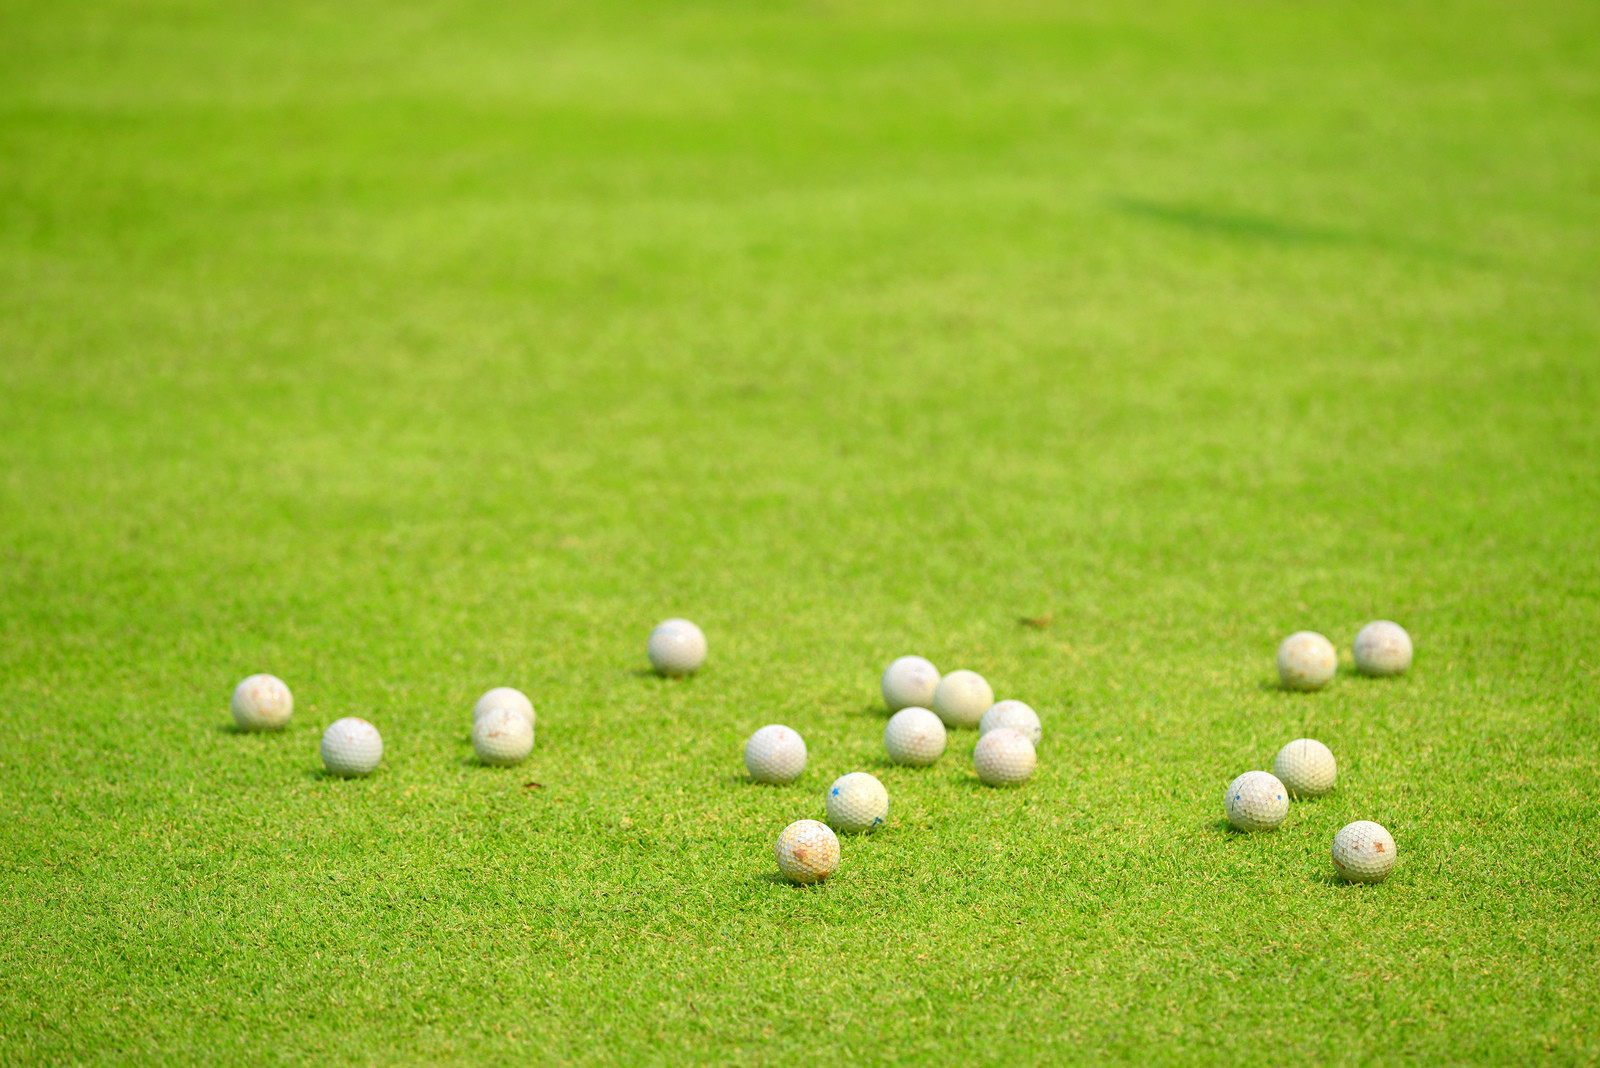 how many golf balls should I hit every day?